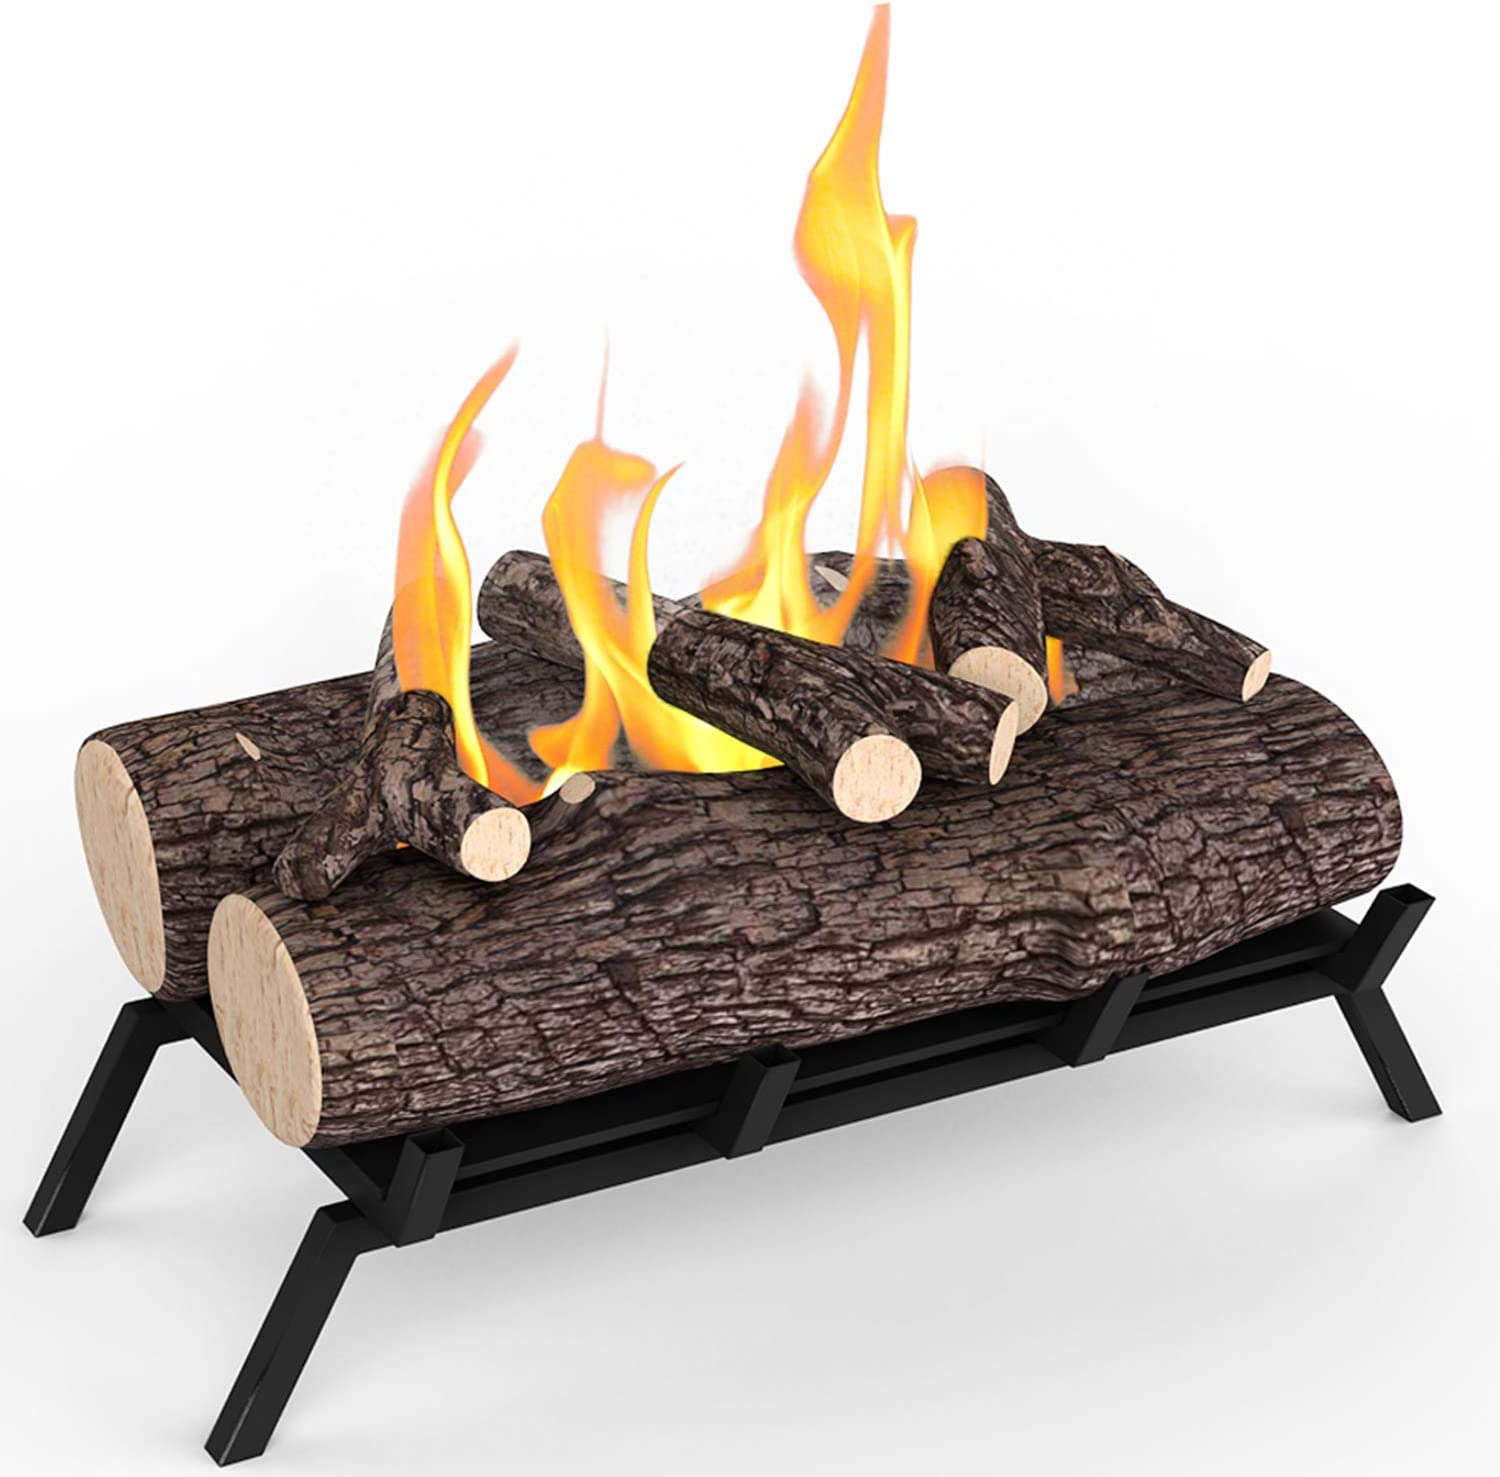 Amazon Com Regal Flame 18 Ethanol Fireplace Grate Log Set With Burner Insert For Easy Conversion From Gas Logs Gel Wood Log Electric Log Electric Fireplace Insert Or Wood Burning Fireplace Insert Oak